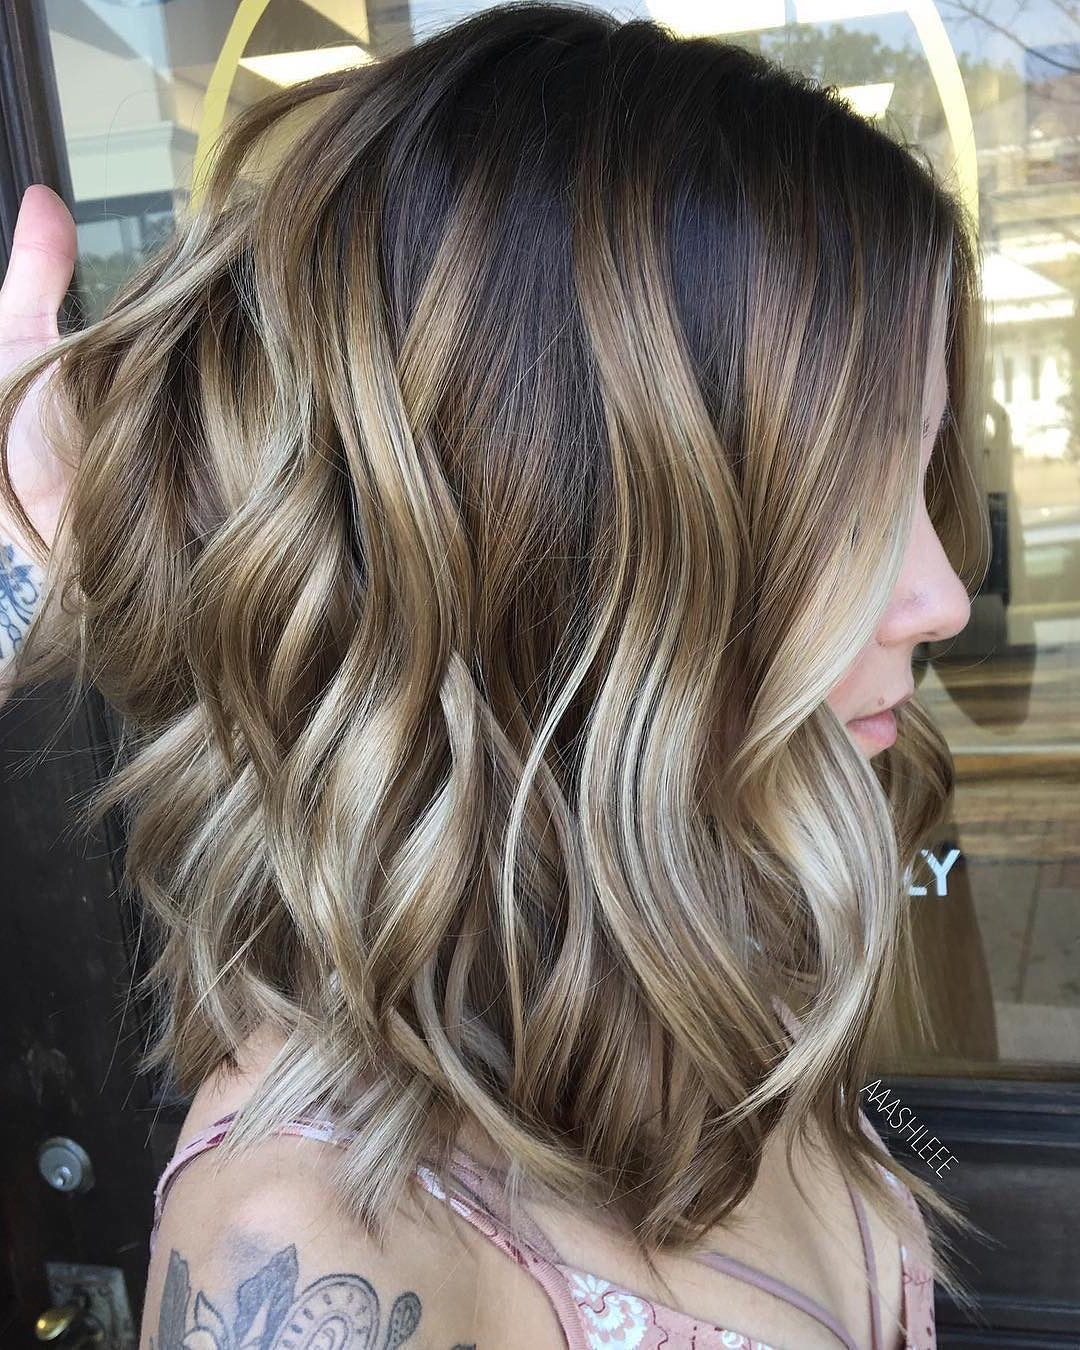 10 Ombre Balayage Hairstyles For Medium Length Hair, Hair Color 2018 Inside Most Up To Date Futuristic And Flirty Ponytail Hairstyles (View 14 of 20)